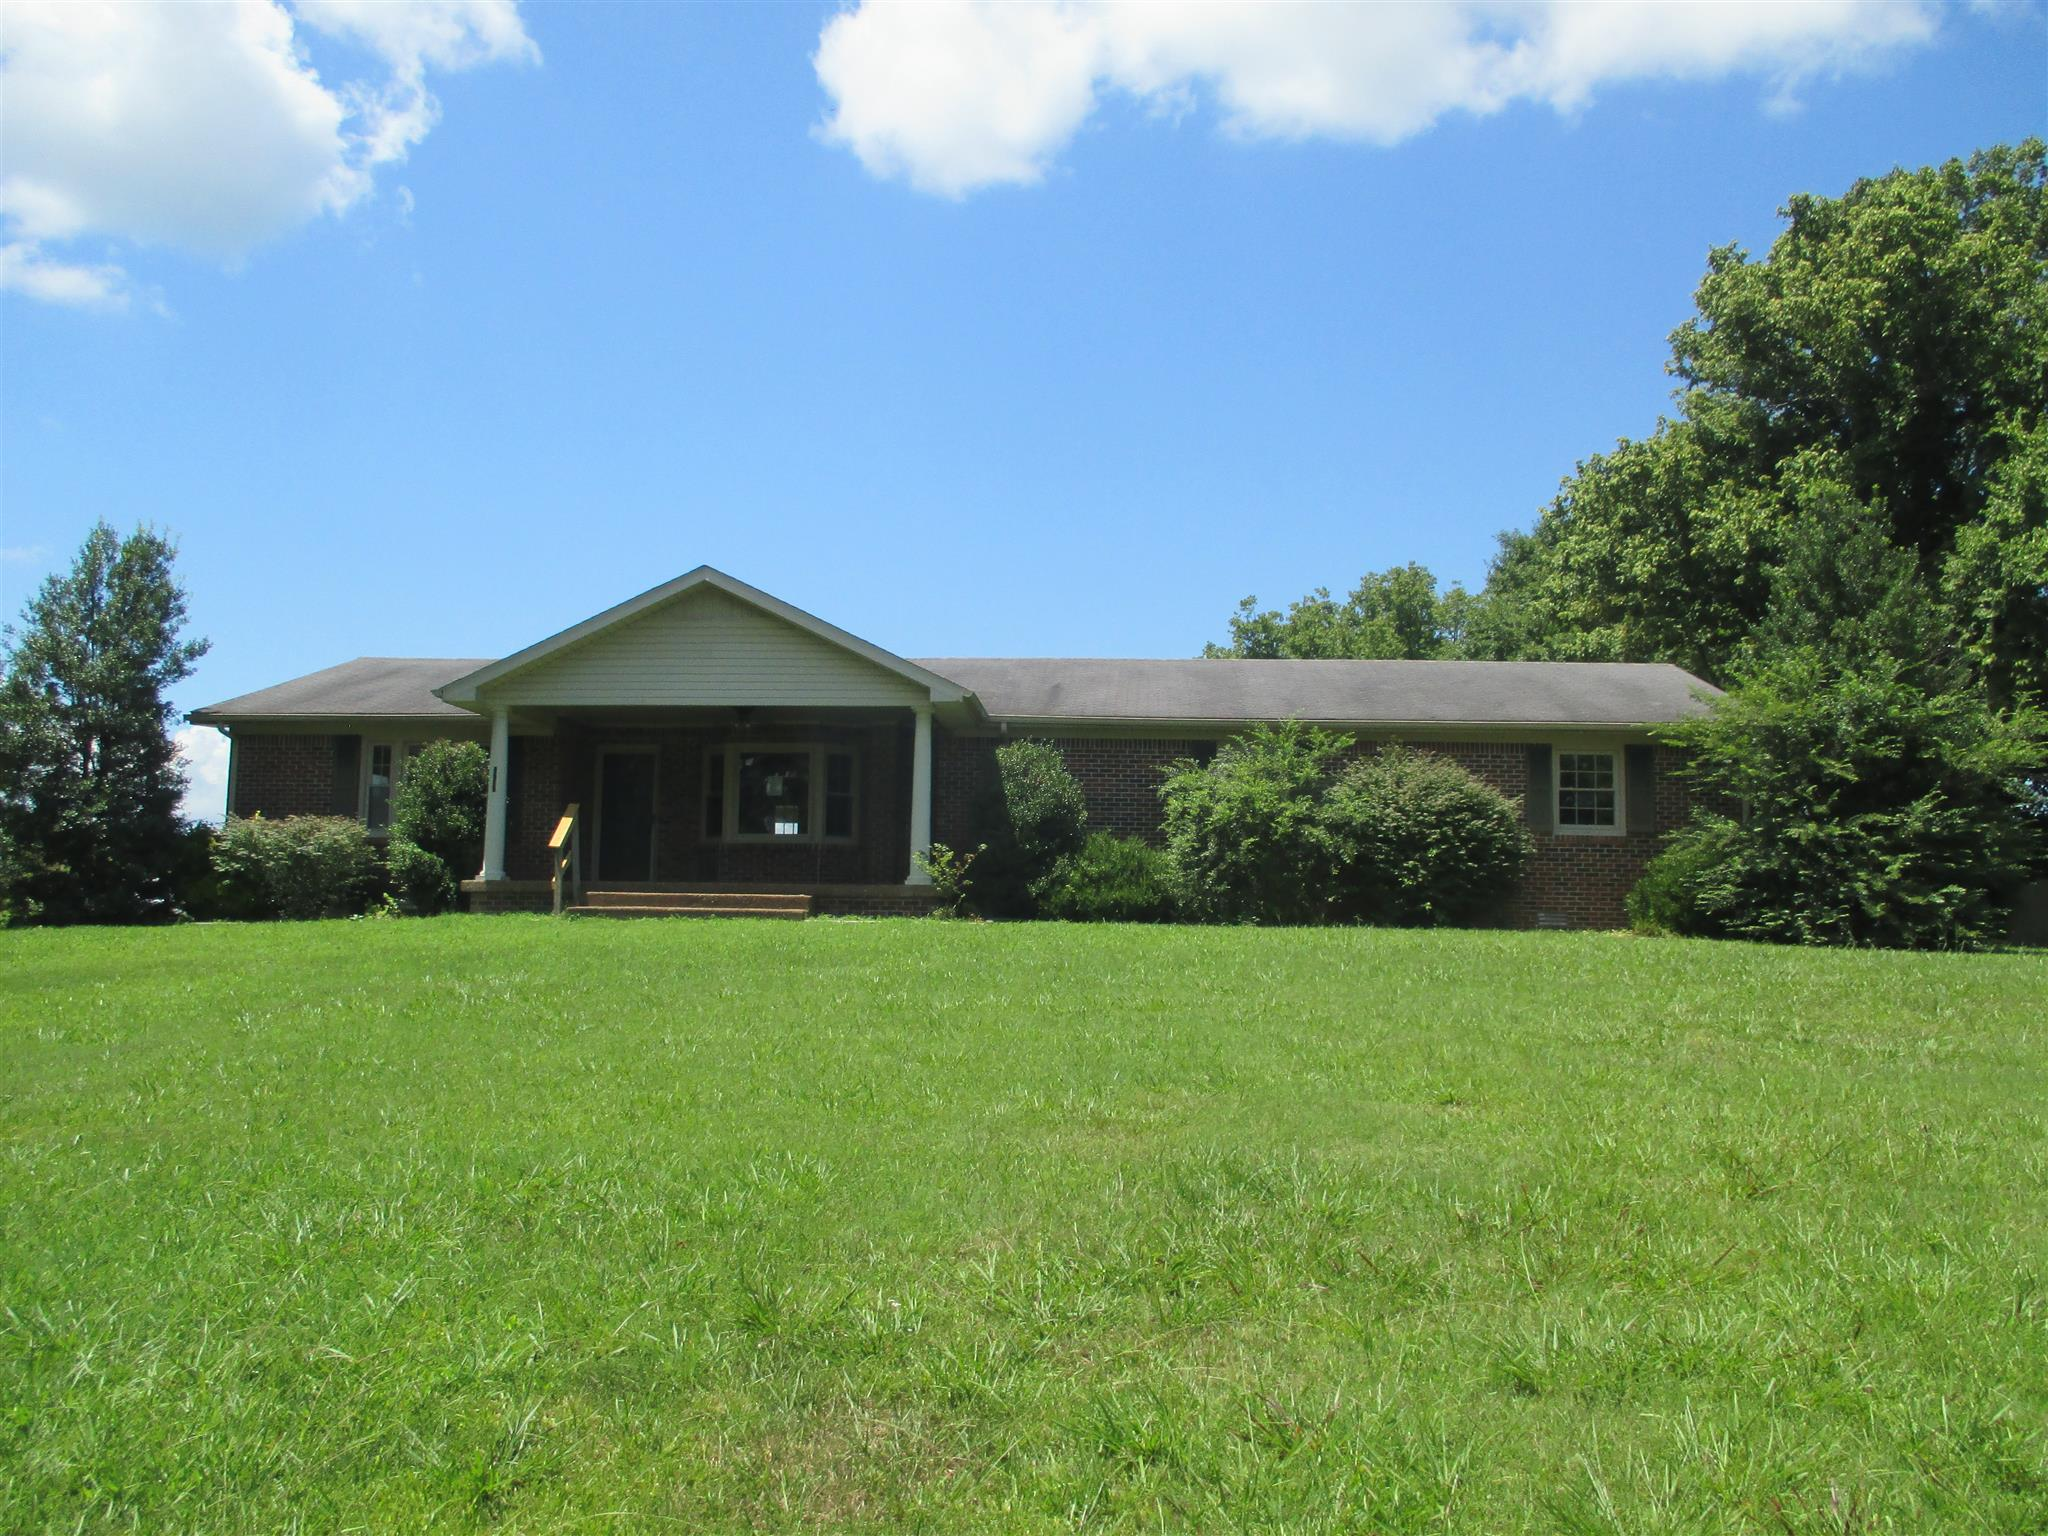 2237 Forks River Rd, Waverly, TN 37185